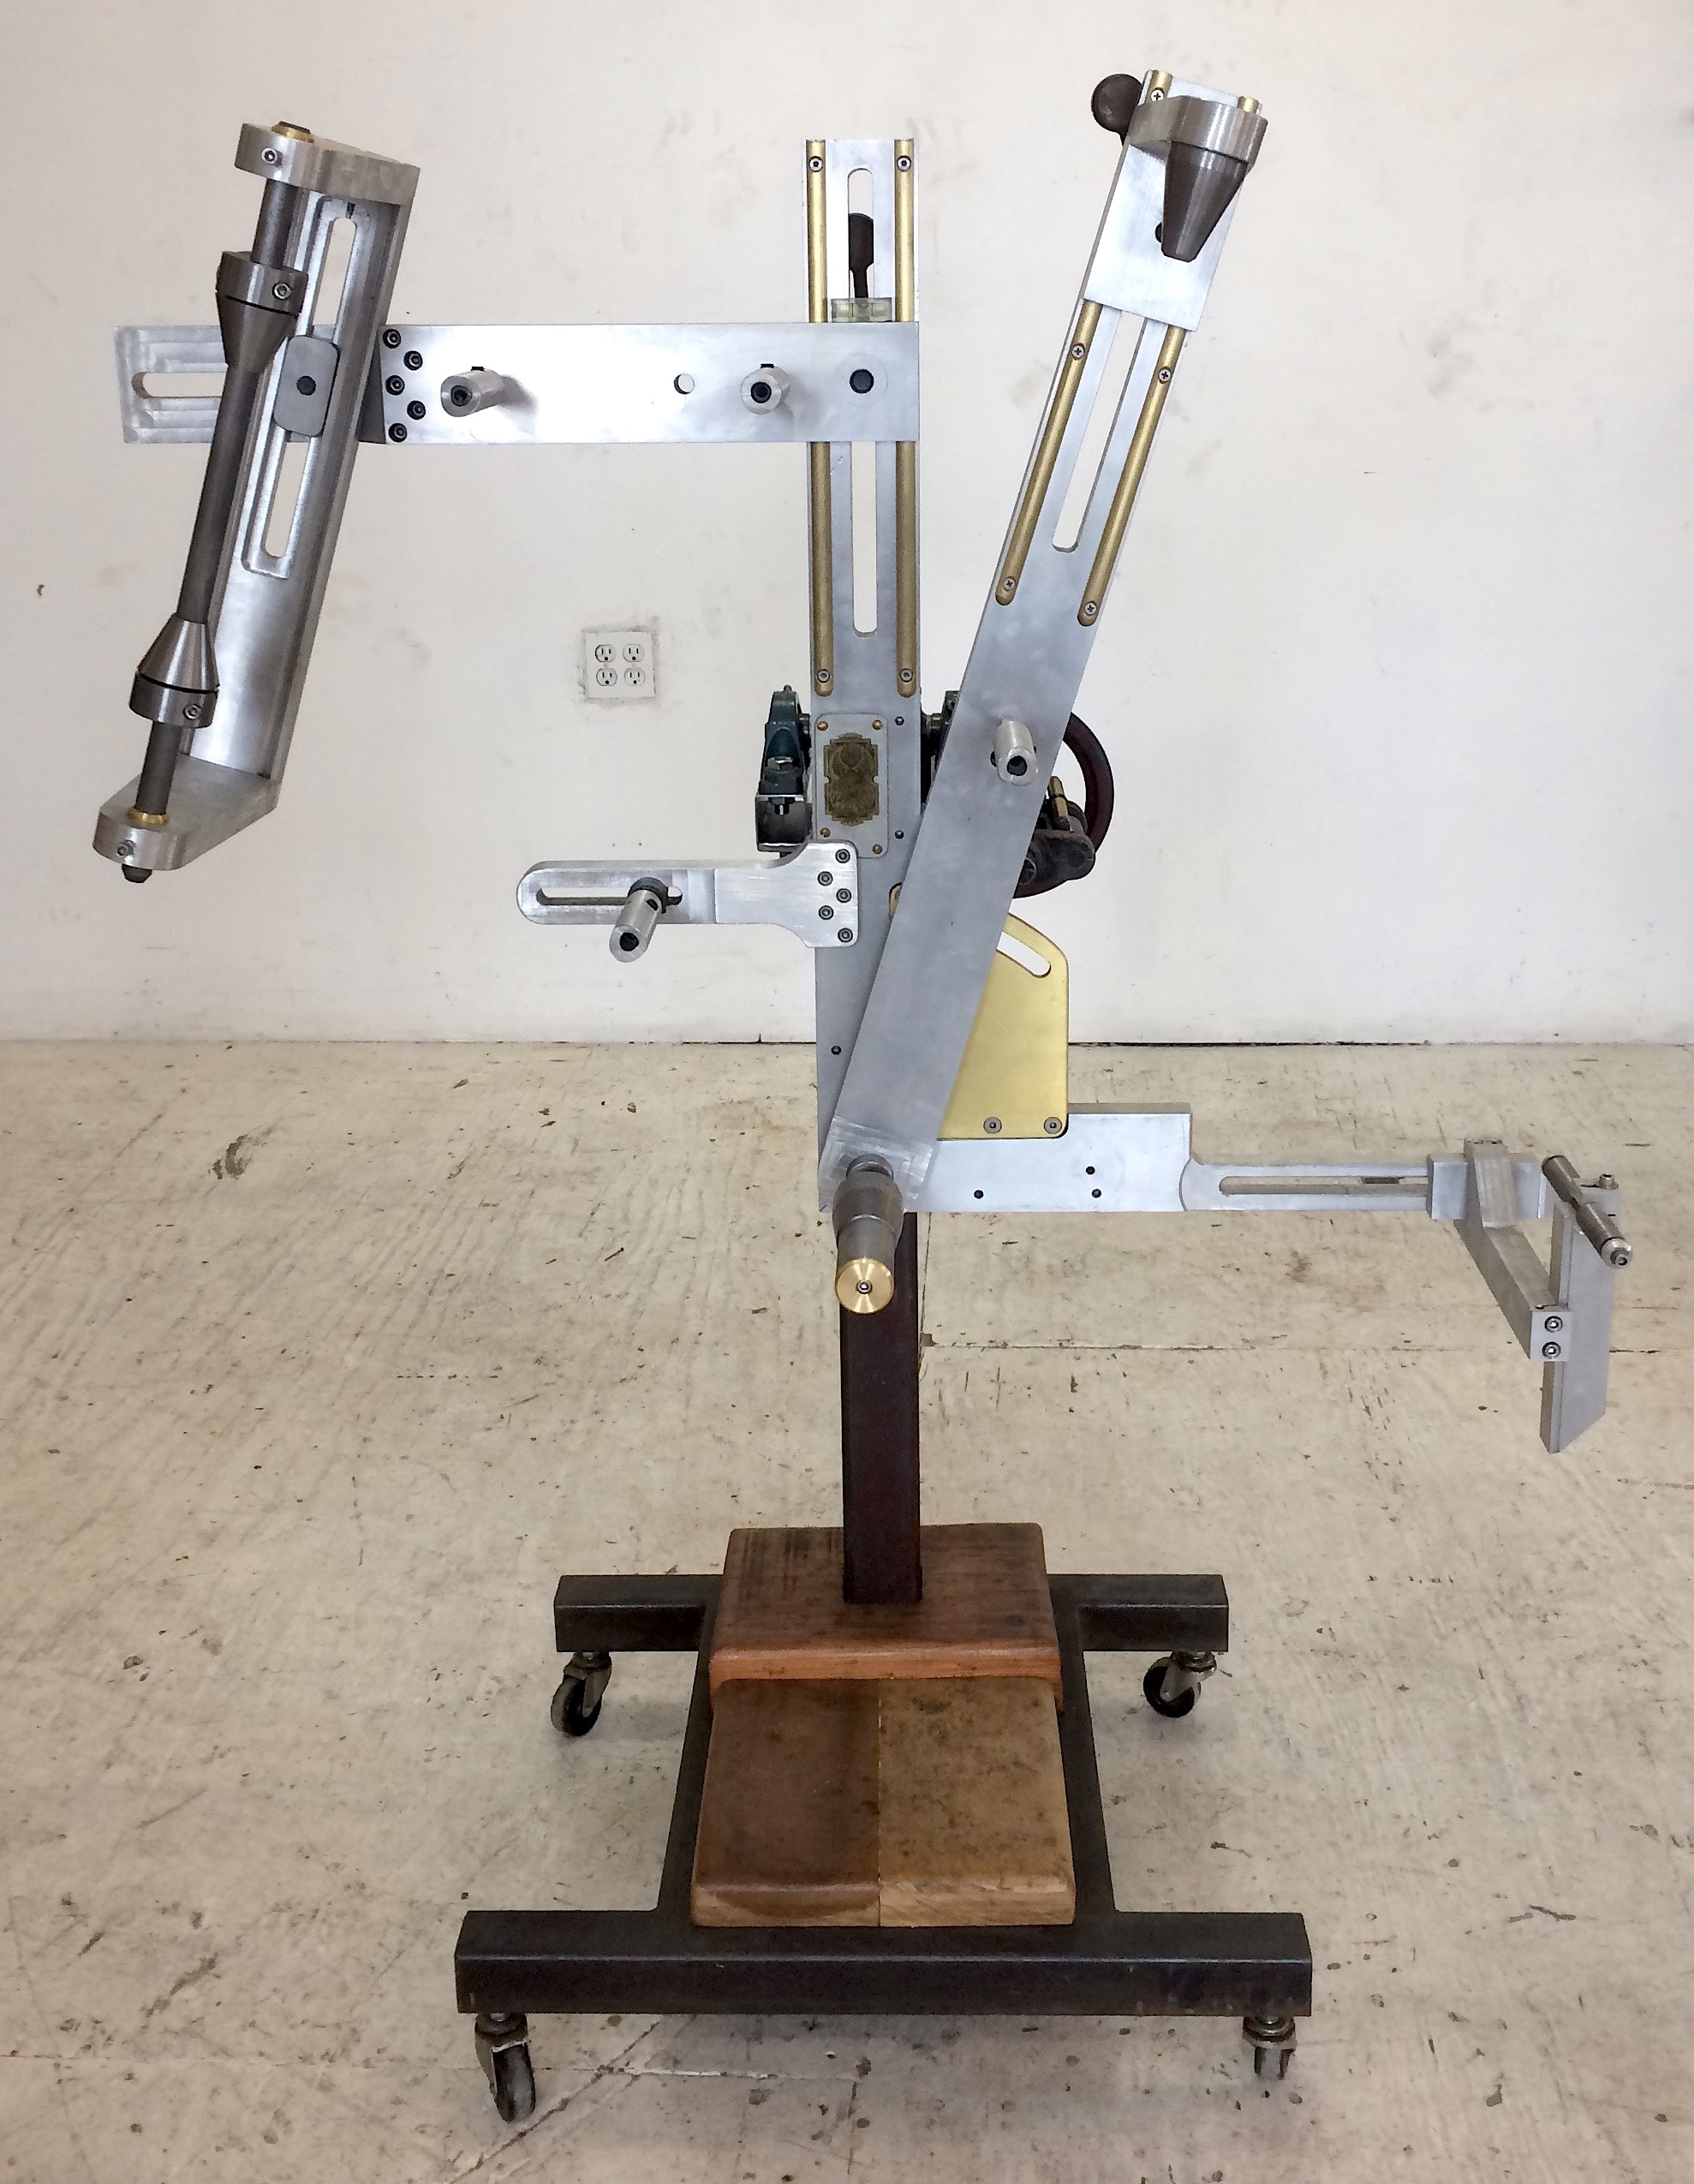 Bicycle, frame fixture, fixture, jig, manual machining, bike, frame building